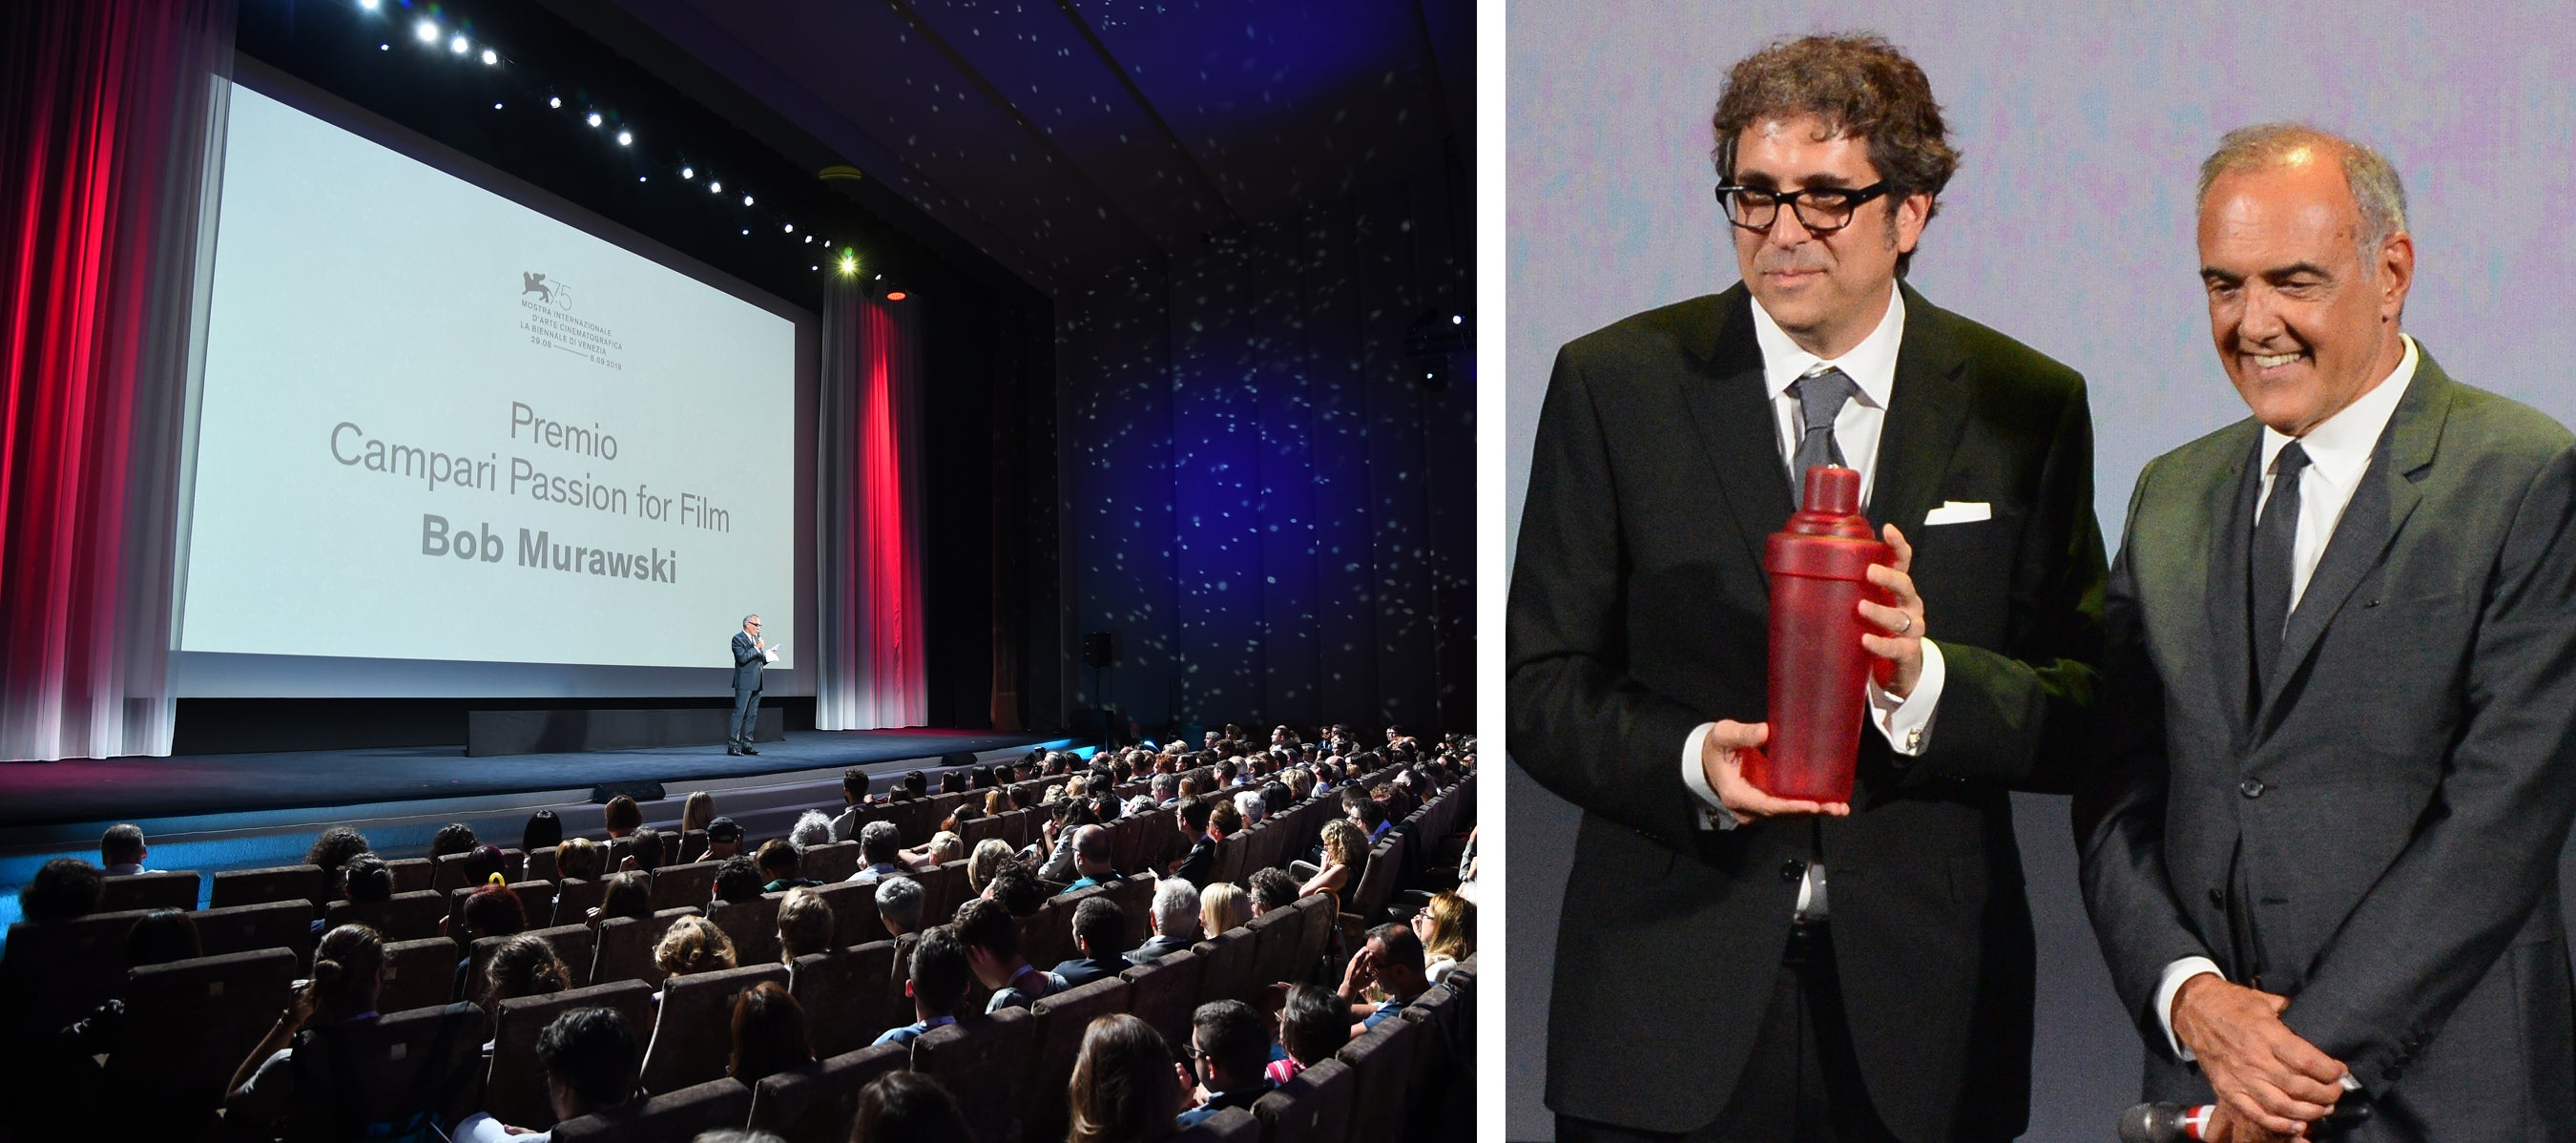 Bob Murawski recevies the Campari Passion for Film Award from director of the festival Alberto Barbera prior to the Screening of The Netflix Film The Other Side Of The Wind during the 75th Venice Film Festival.